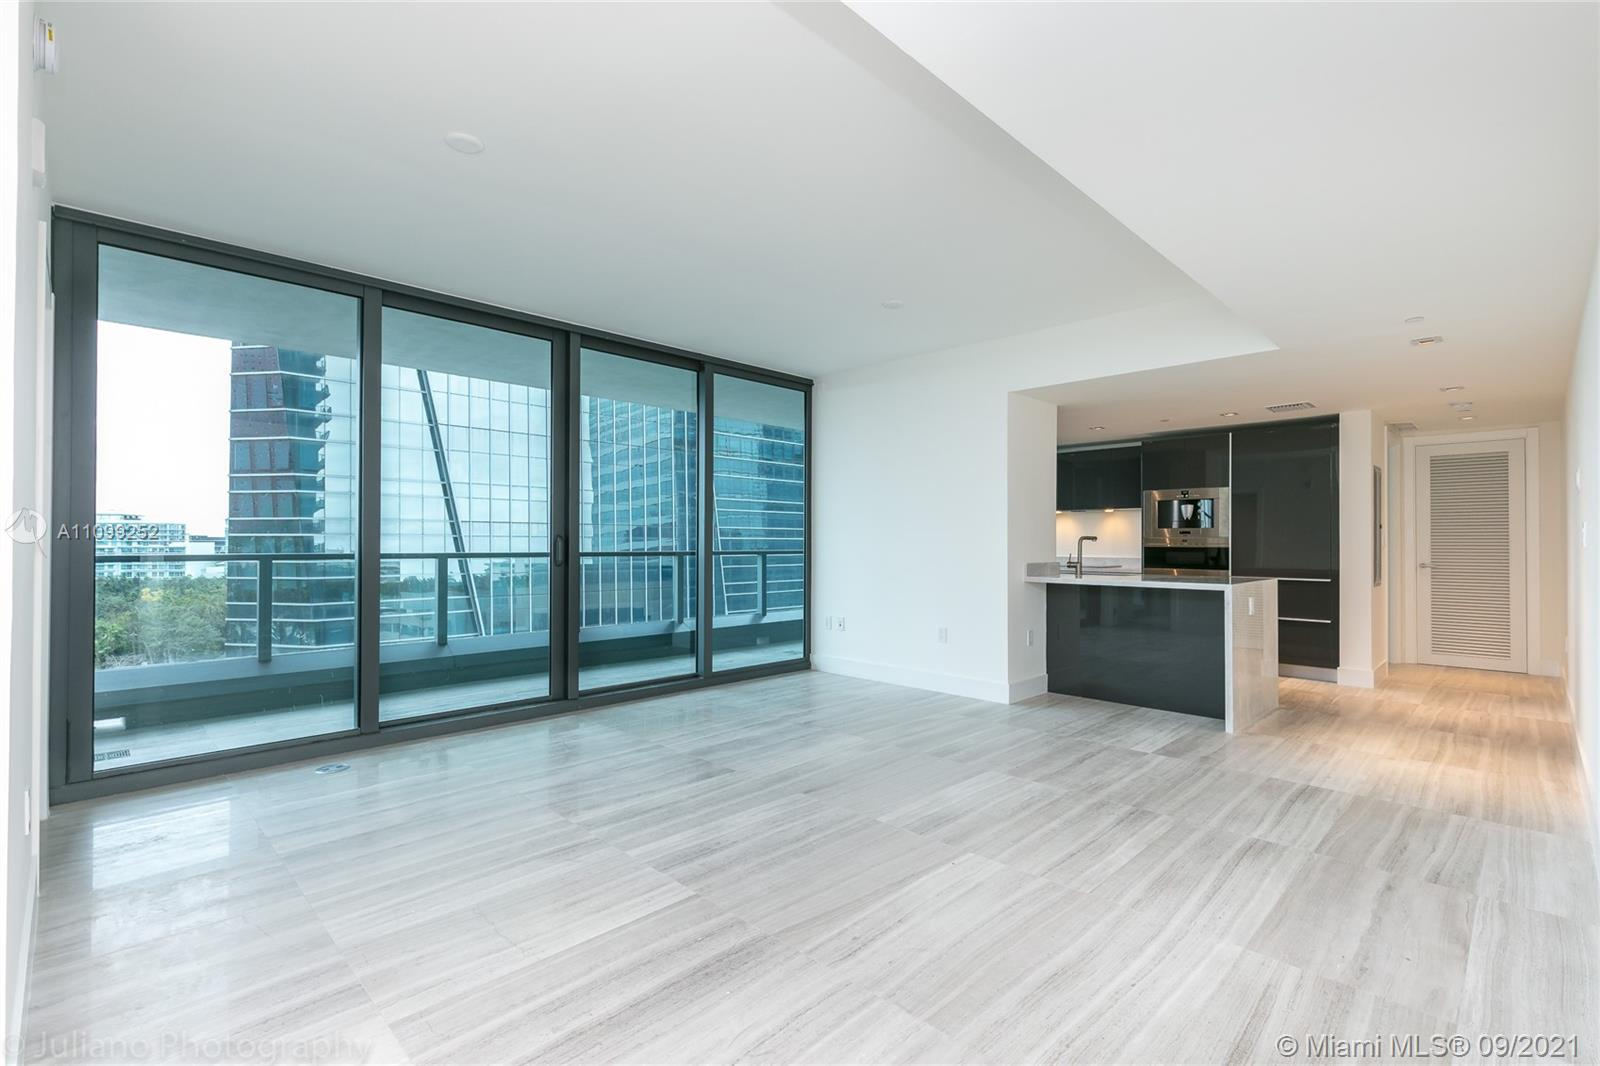 (SHOWING STARTS SEPTEMBER 23rd) TOTAL AREA 1,355 SqFt as per developer BEST PRICE IN THE BUILDING The most amazing and luxurious building on BRICKELL!!! This high rise offers the most exclusive services for the residents. The condominium offers  dog walker, elevator garage with car delivery, in house exclusive residents restaurant, in house bar exclusive for residents, gym trainer and much more. This is also an smart building, with means that everything on the unit and on the building can be control thru your cell phone or tablet from anywhere at any time.